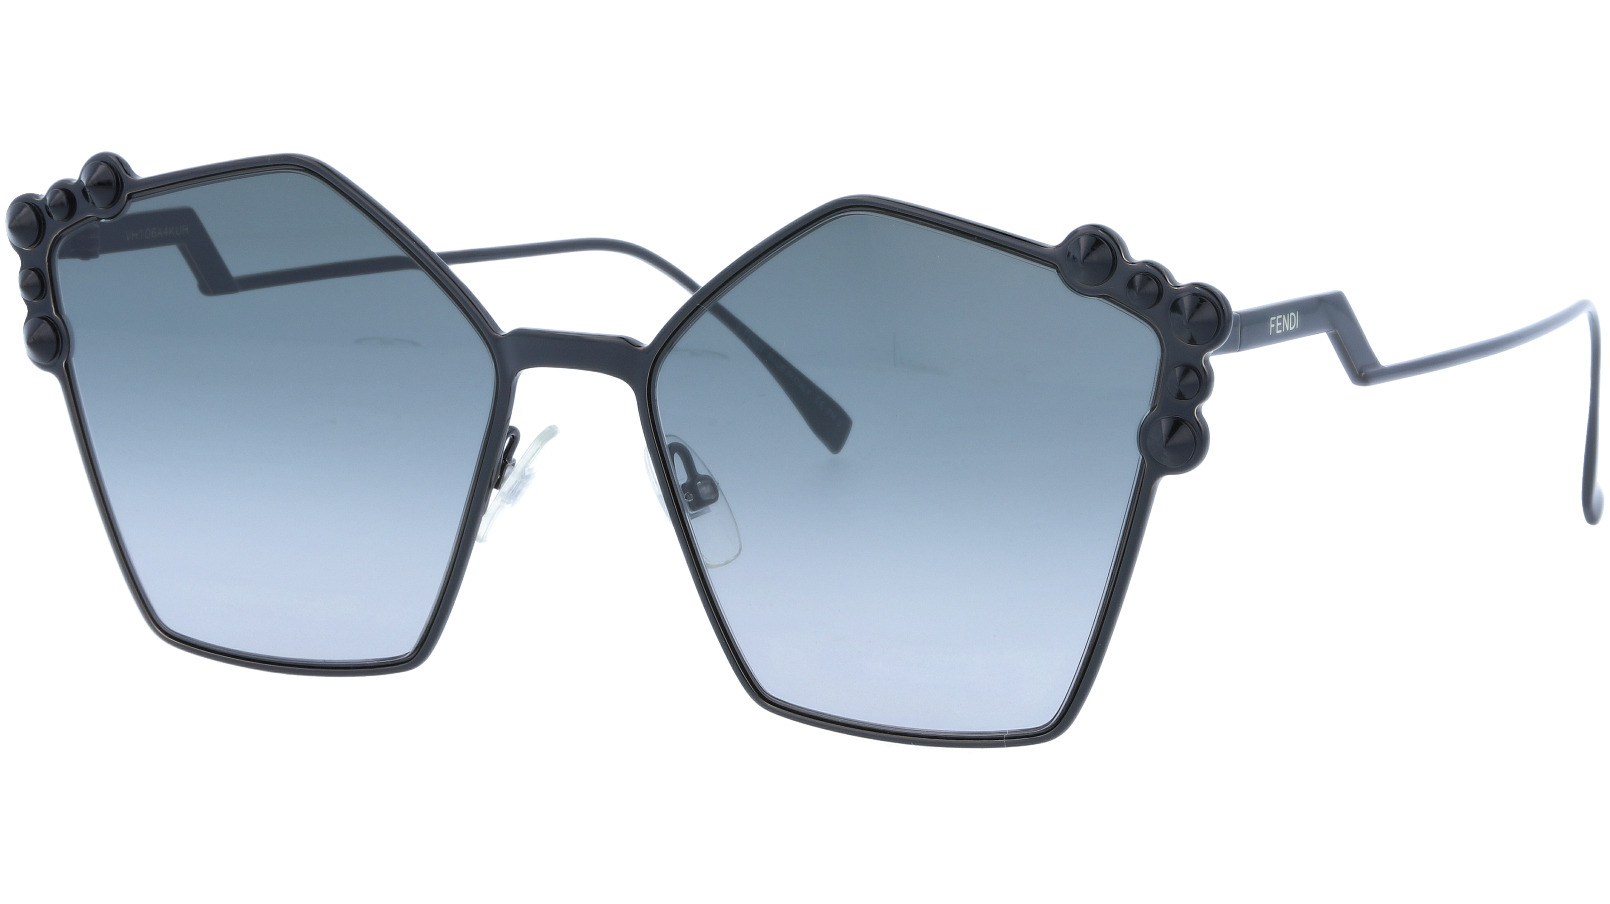 FENDI FF0261/S 20590 57 Black Studded Pentagon Sunglasses